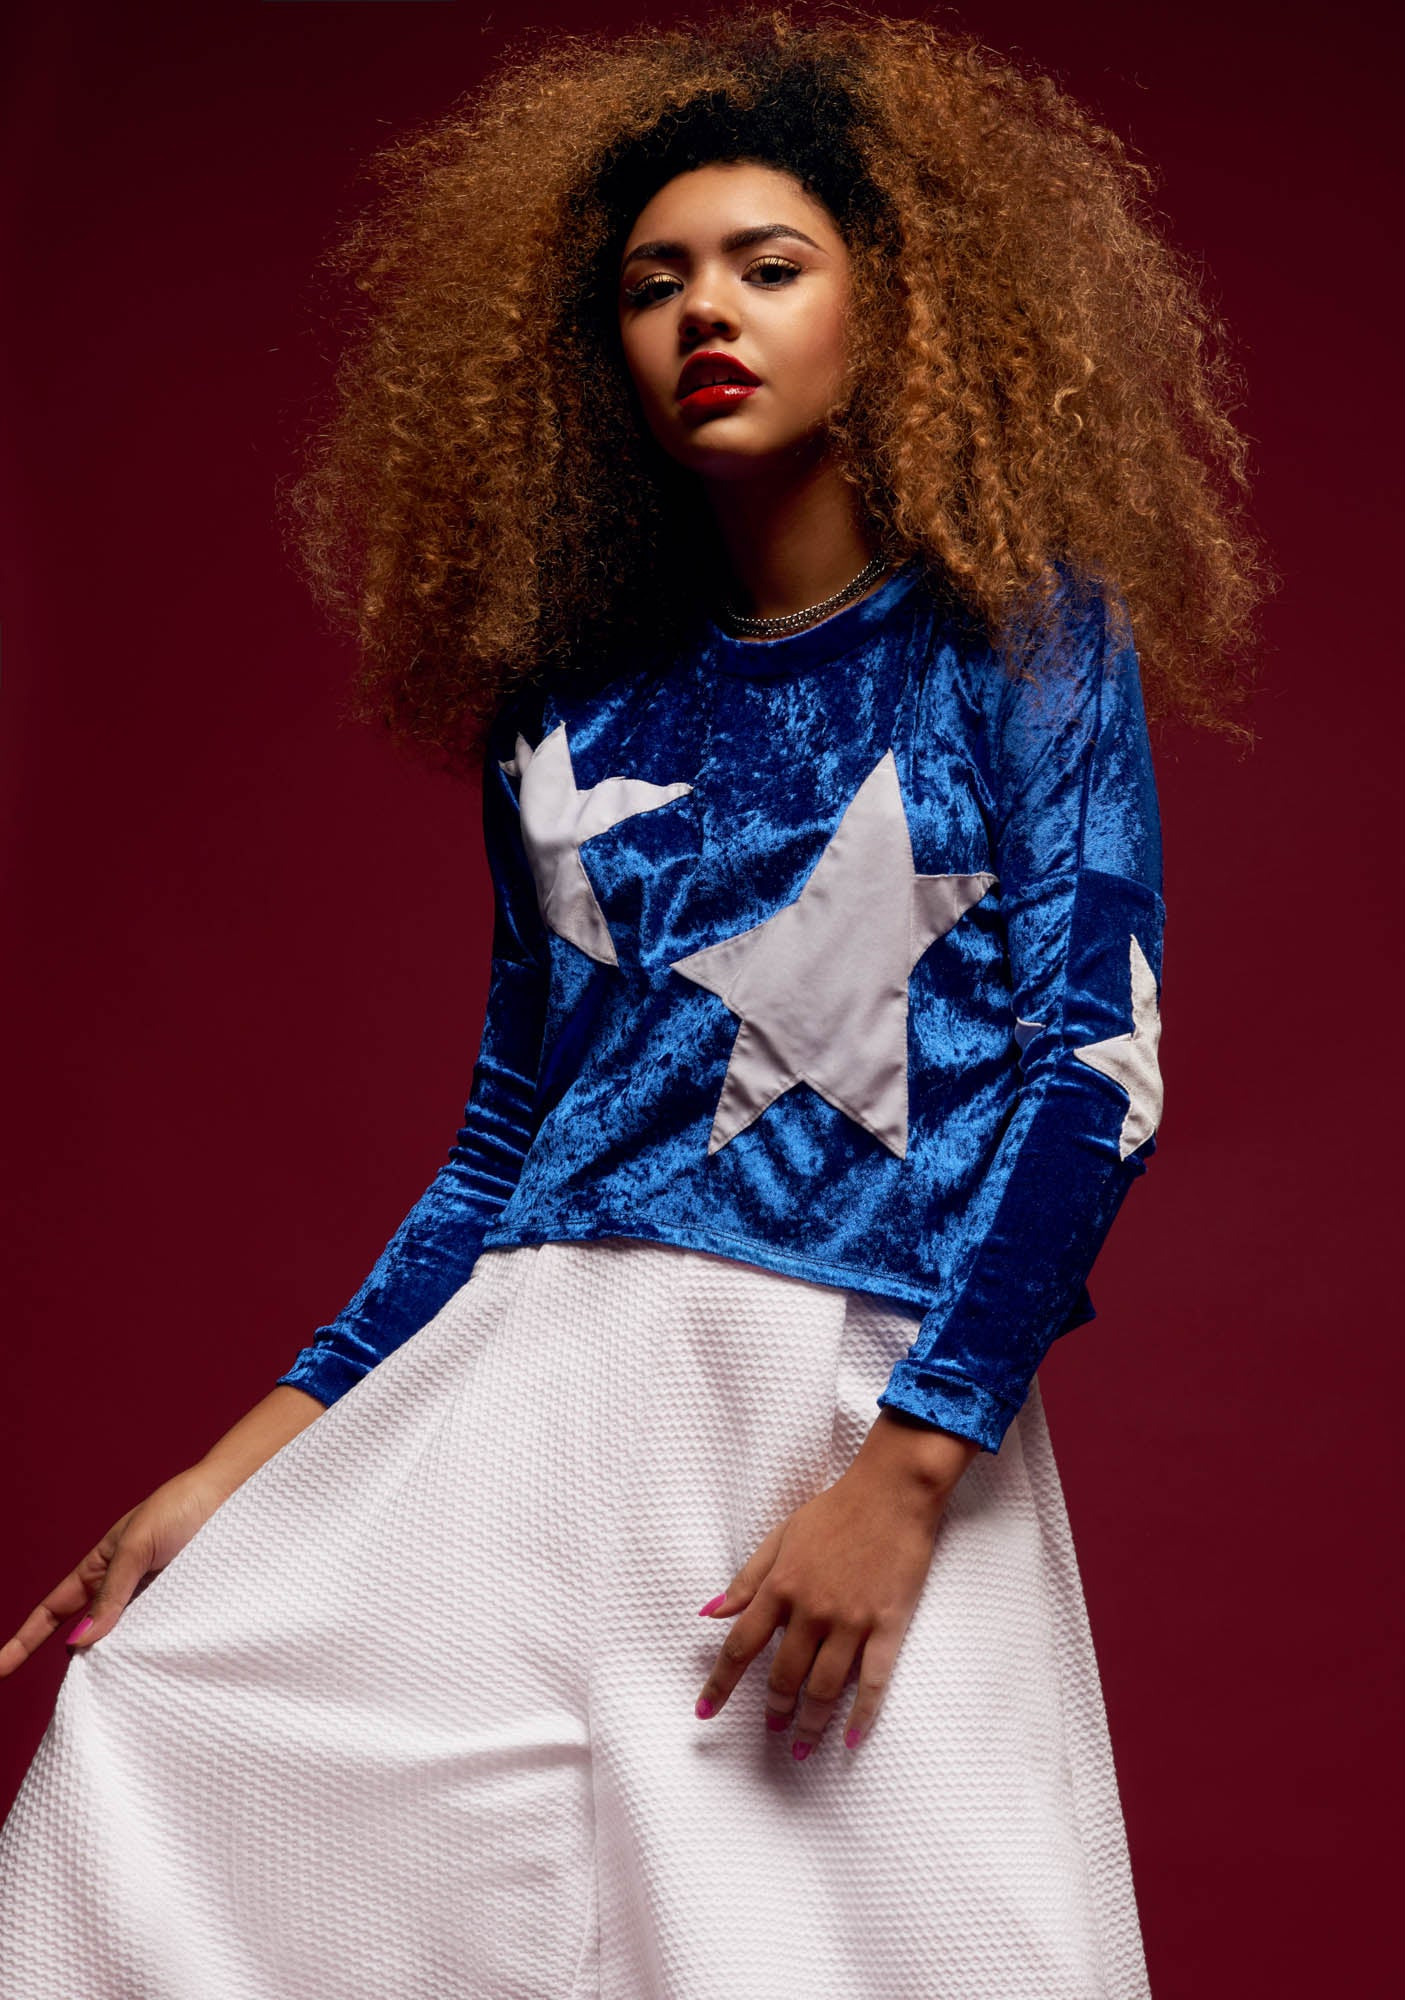 The afro hair model wears a fashion outfit for Camille Côté.